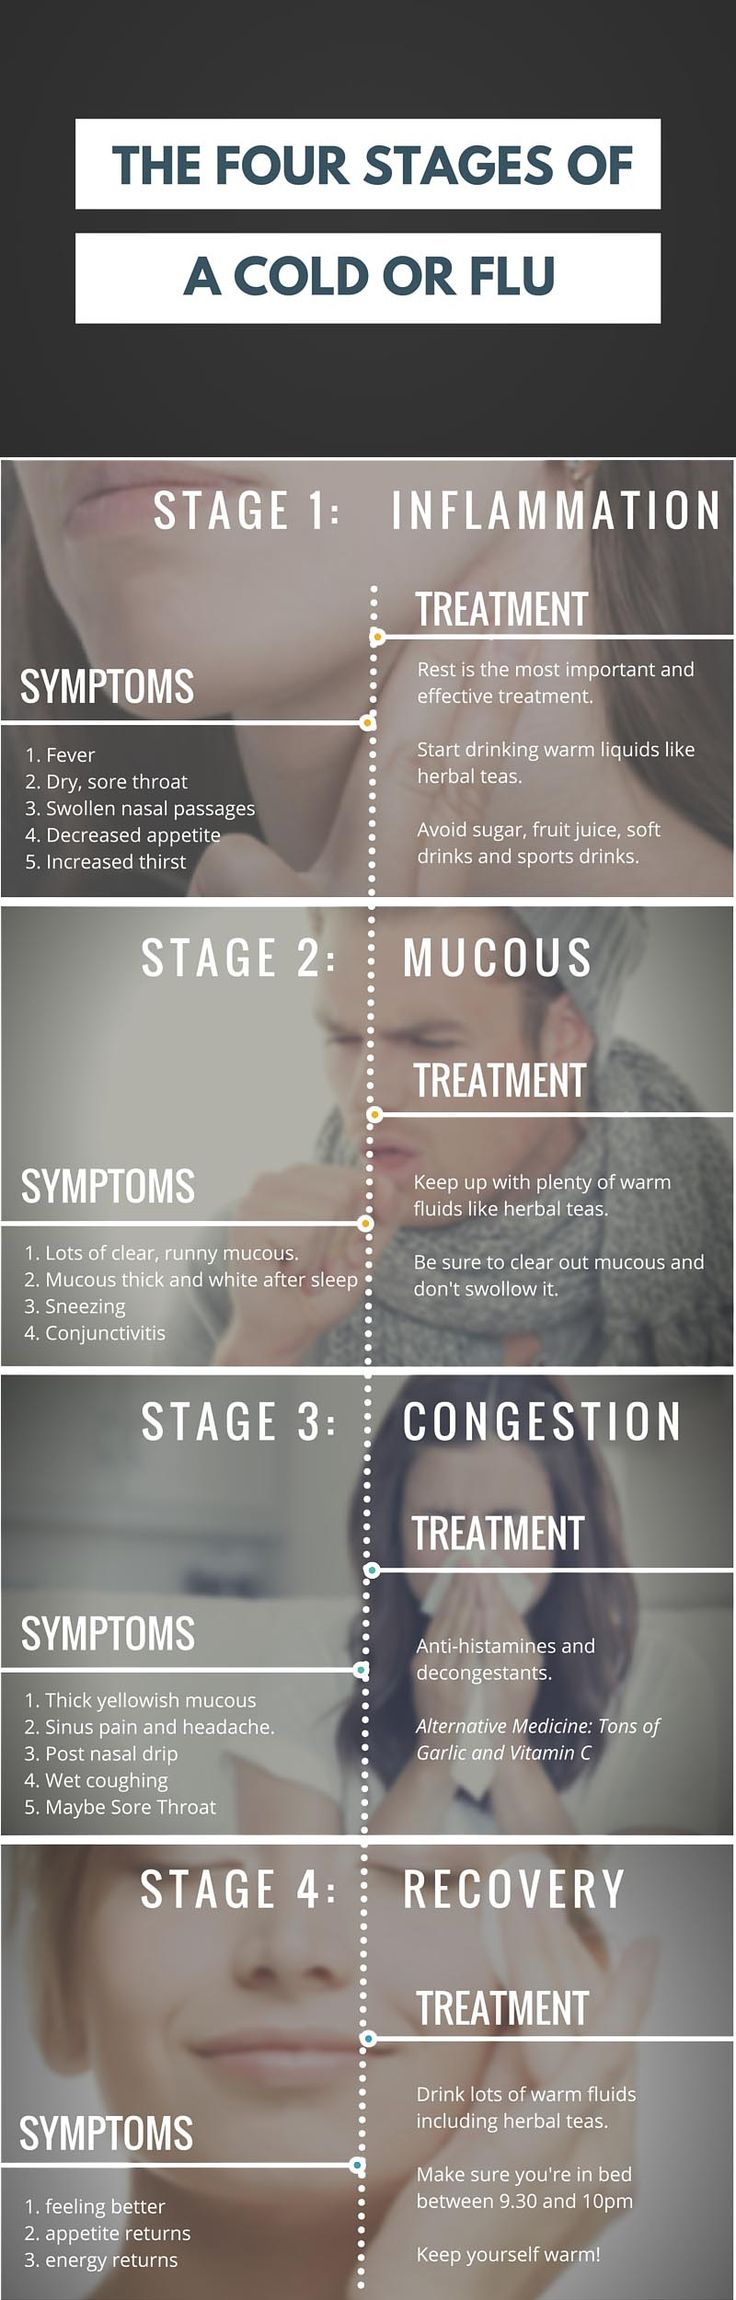 Stages of a cold or flu http://urbol.com/cold-flue-life-cycle/